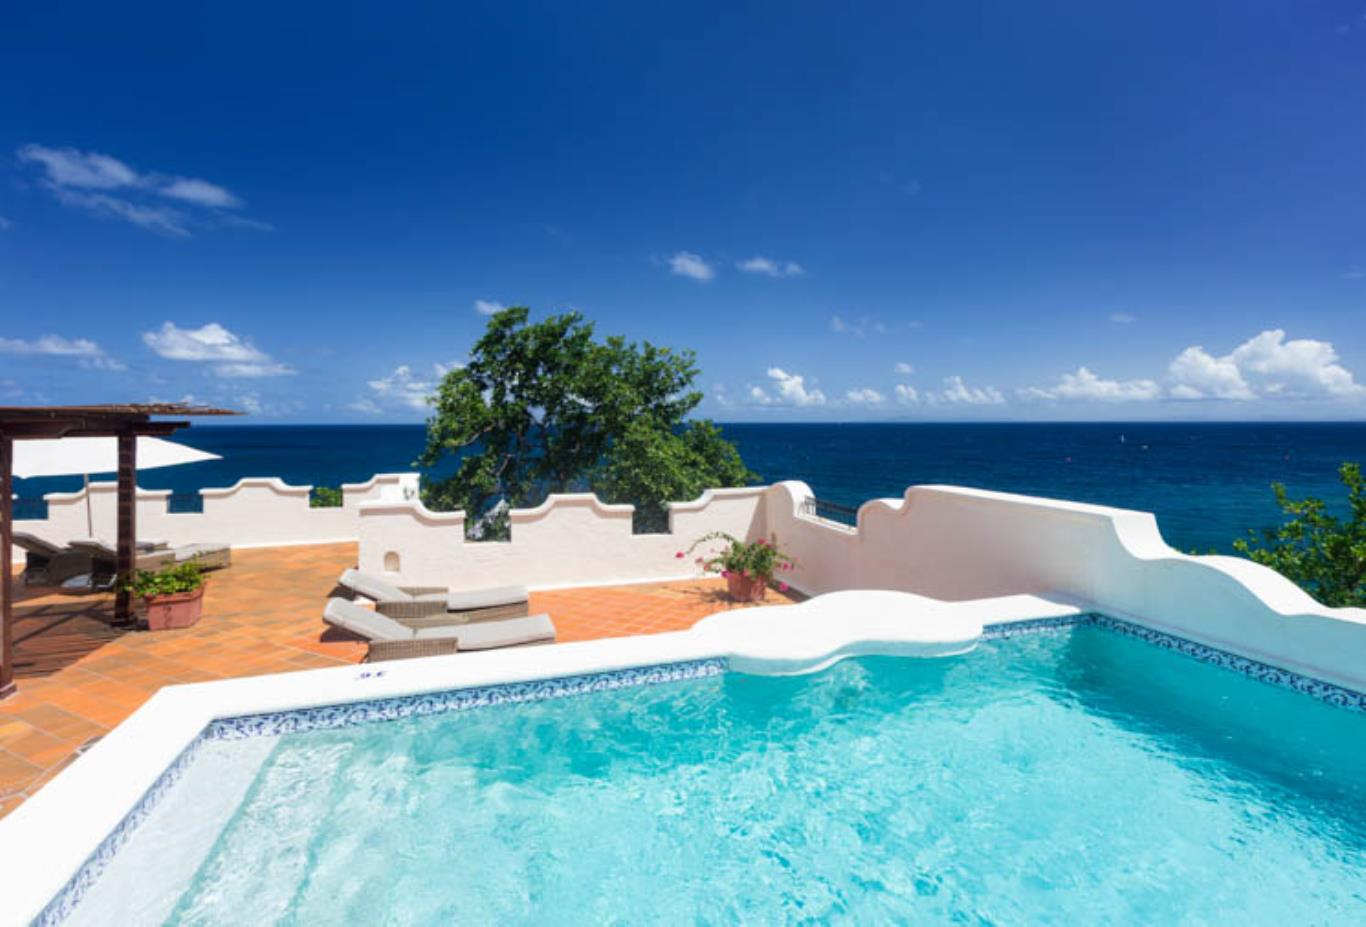 Ocean View Villa Suite with Pool and Terrace